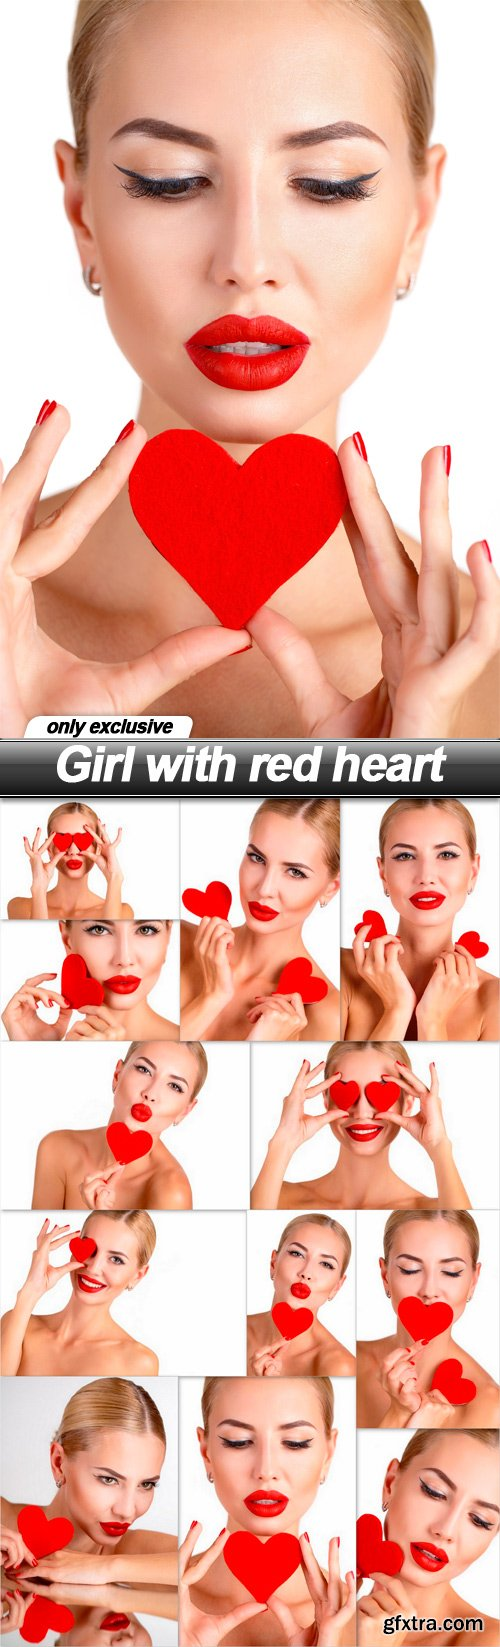 Girl with red heart - 12 UHQ JPEG